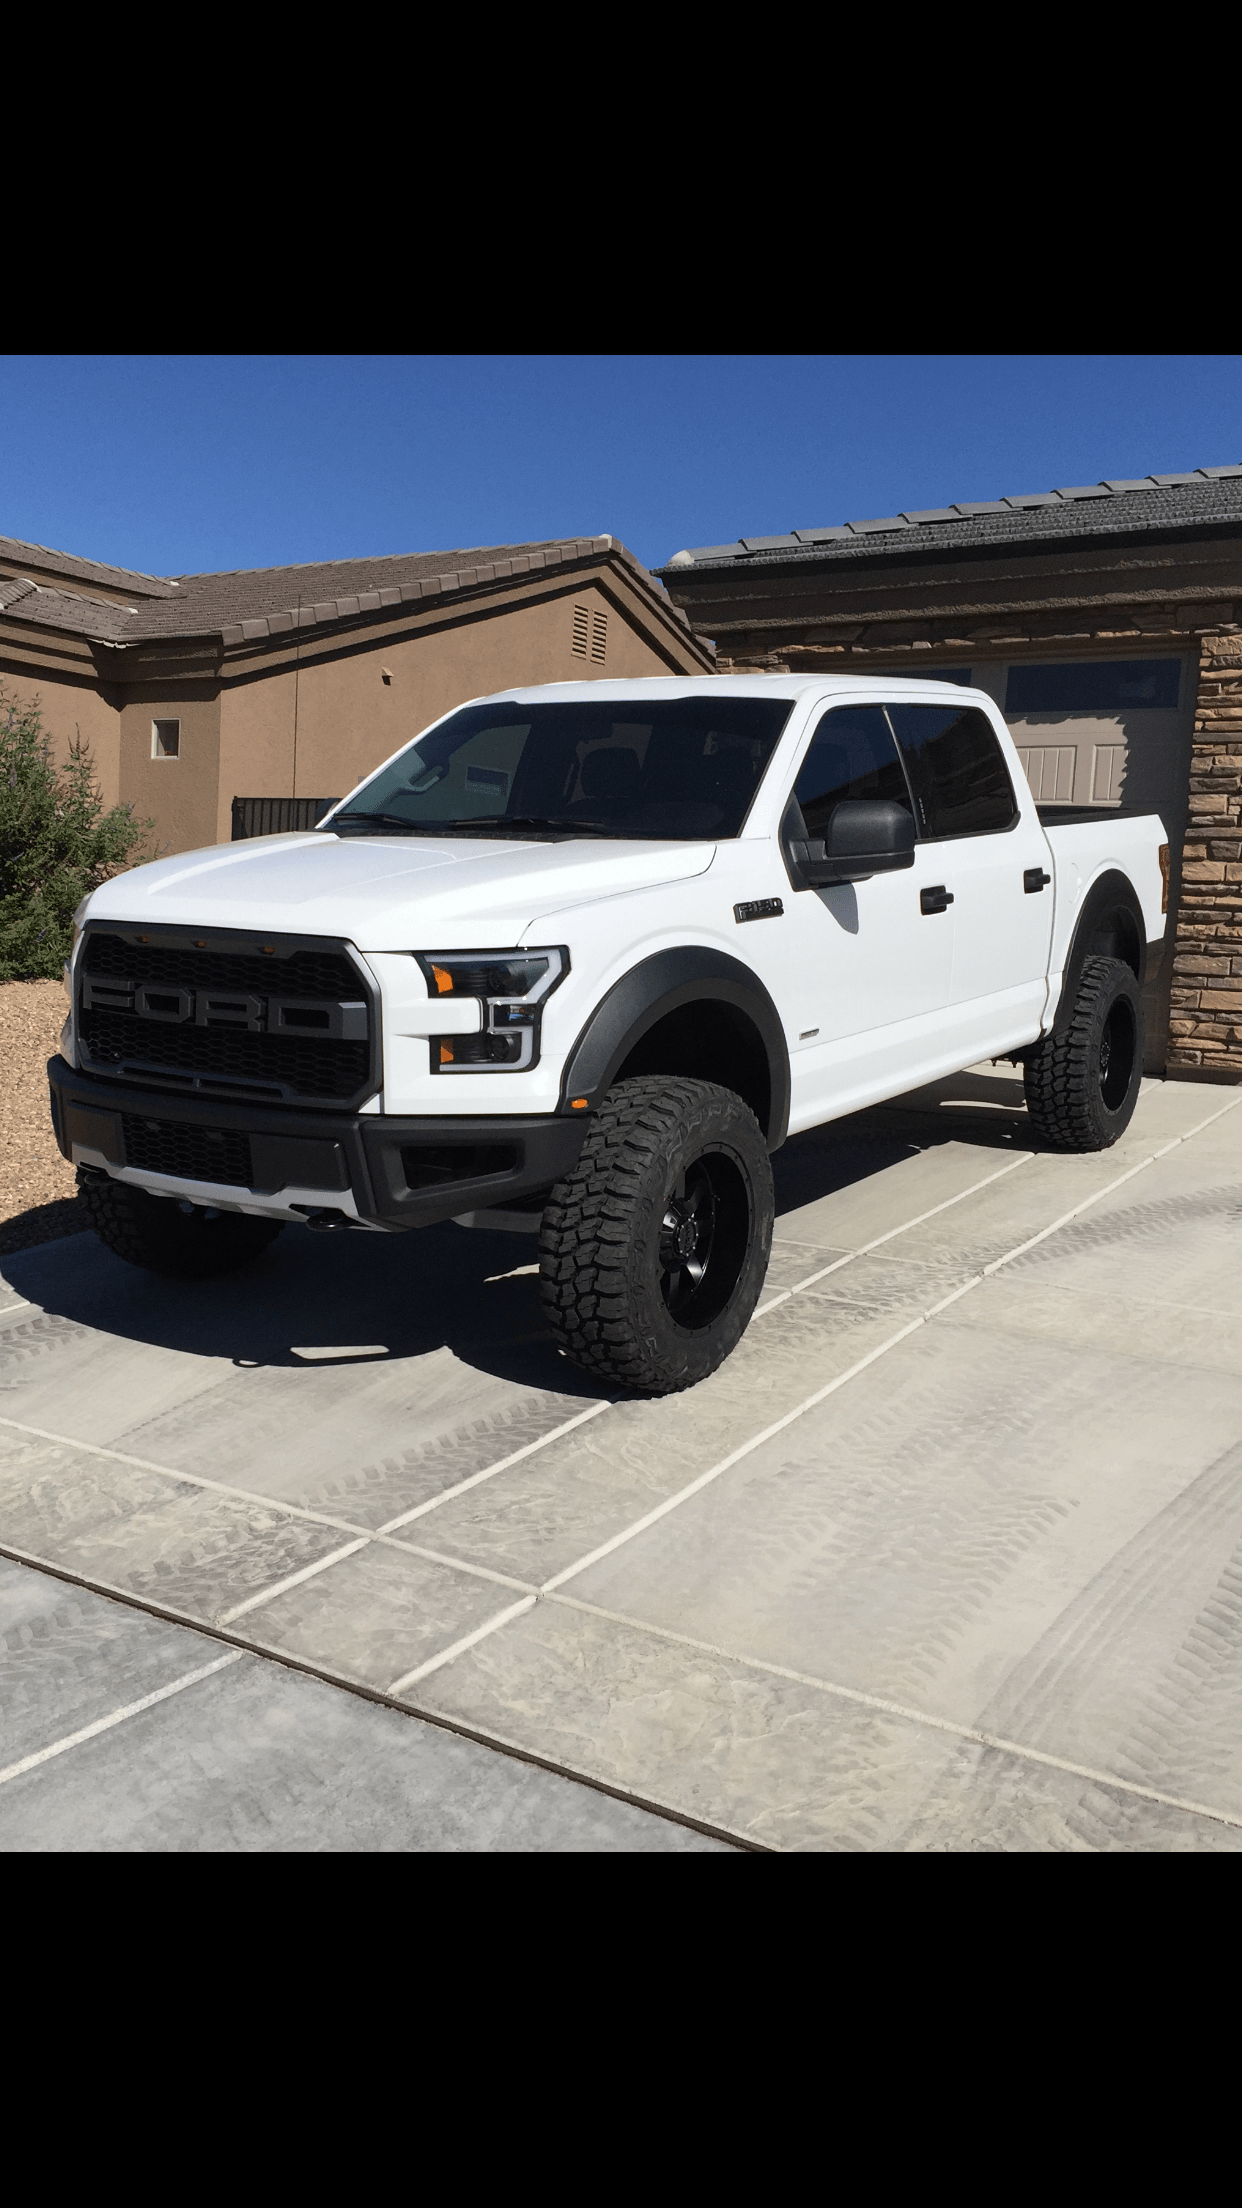 White Ford F150 With Black Rims : white, black, Oxford, White, Up!!!!, Forum, Community, Truck